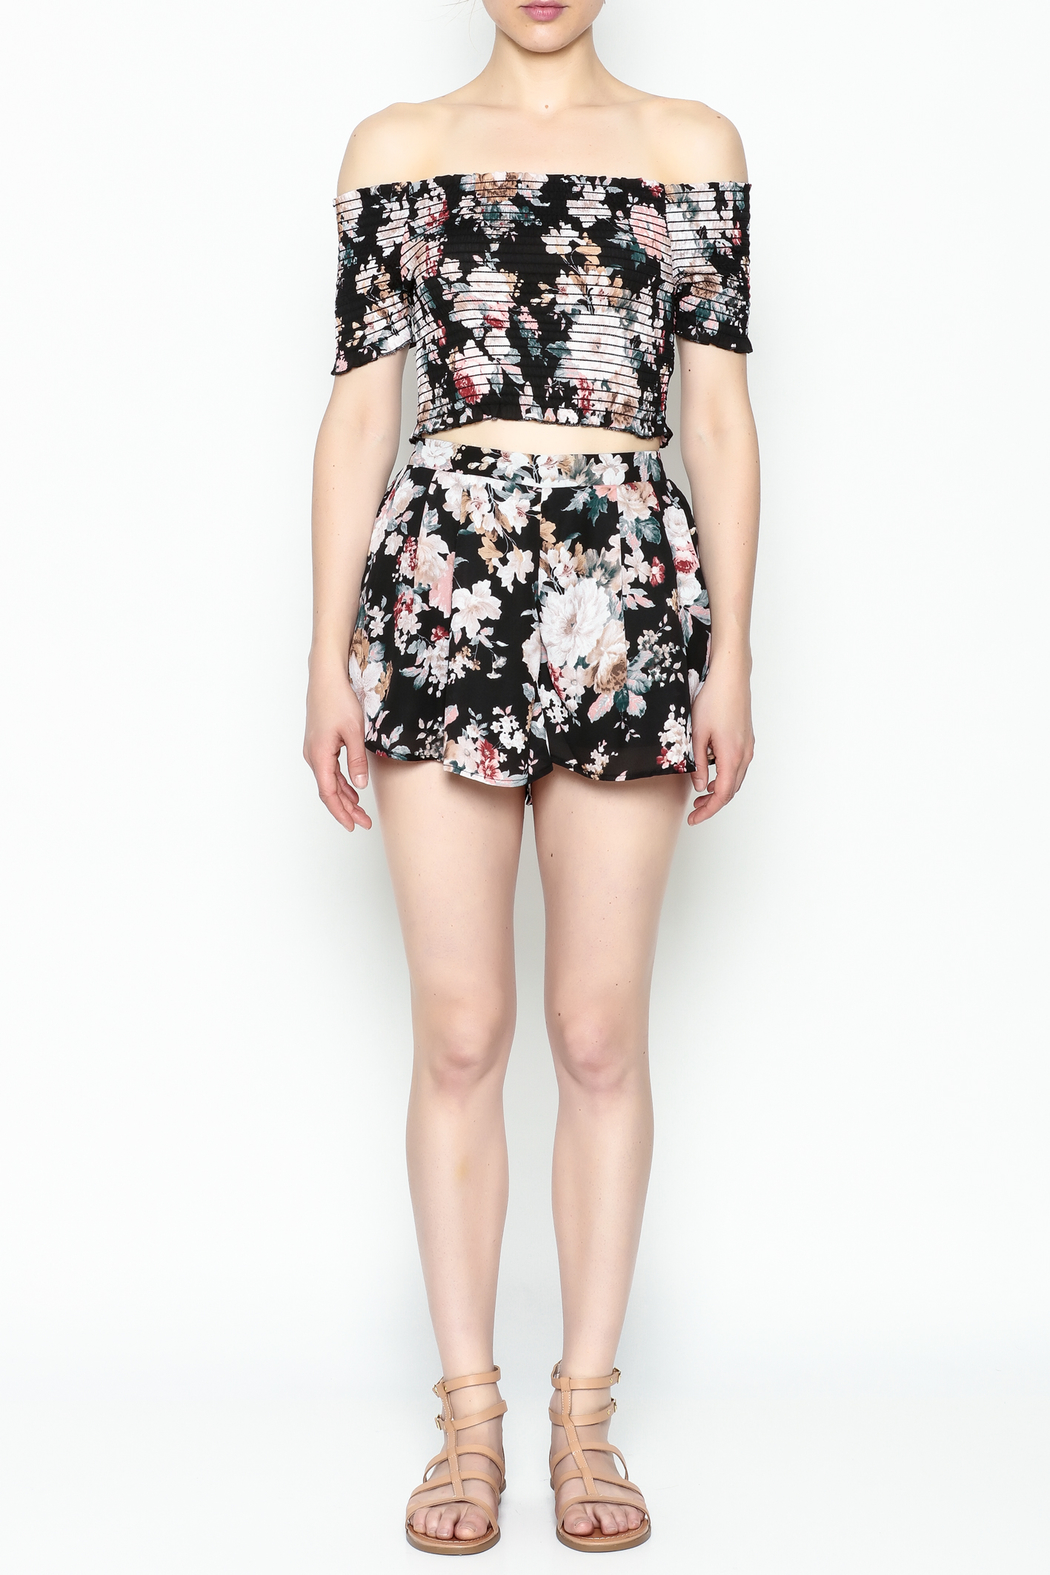 Favlux Floral Print Shorts - Front Full Image